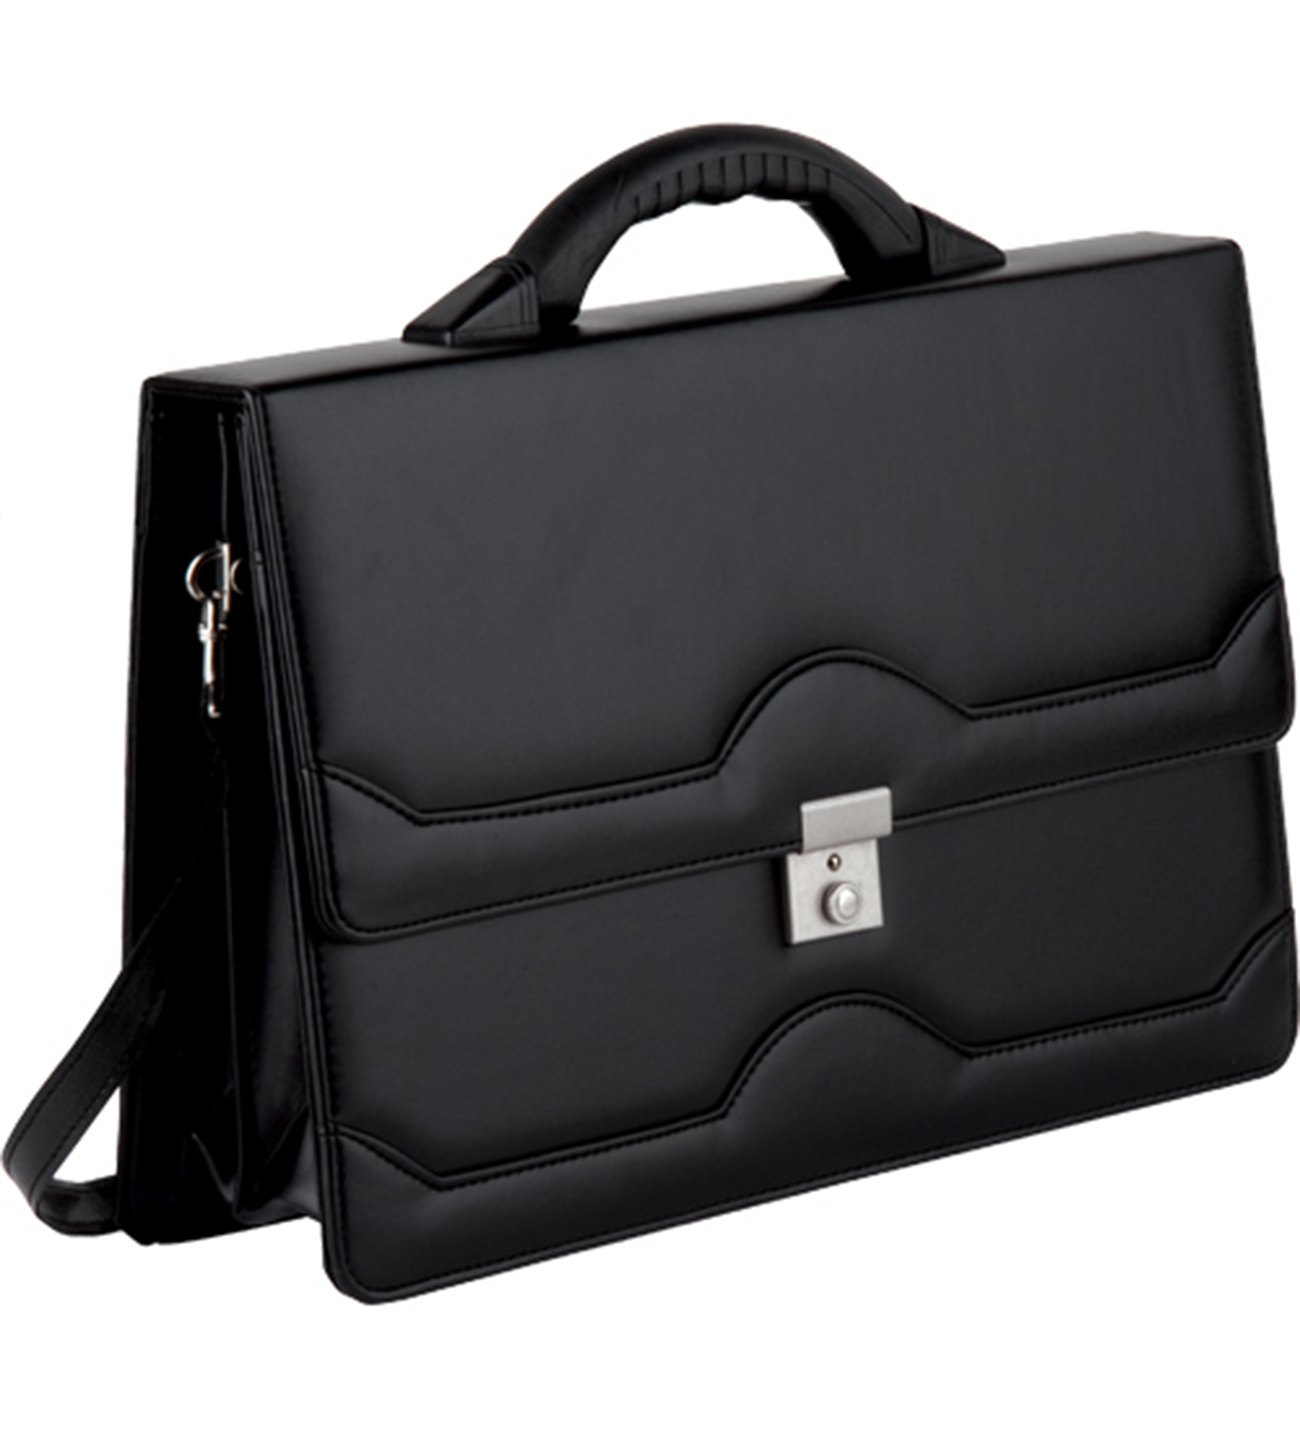 Briefcase Bag Leather Laptop Bag Shoulder Bags Top Sell Fashion Simple Dot Famous Brand Business Men And Women